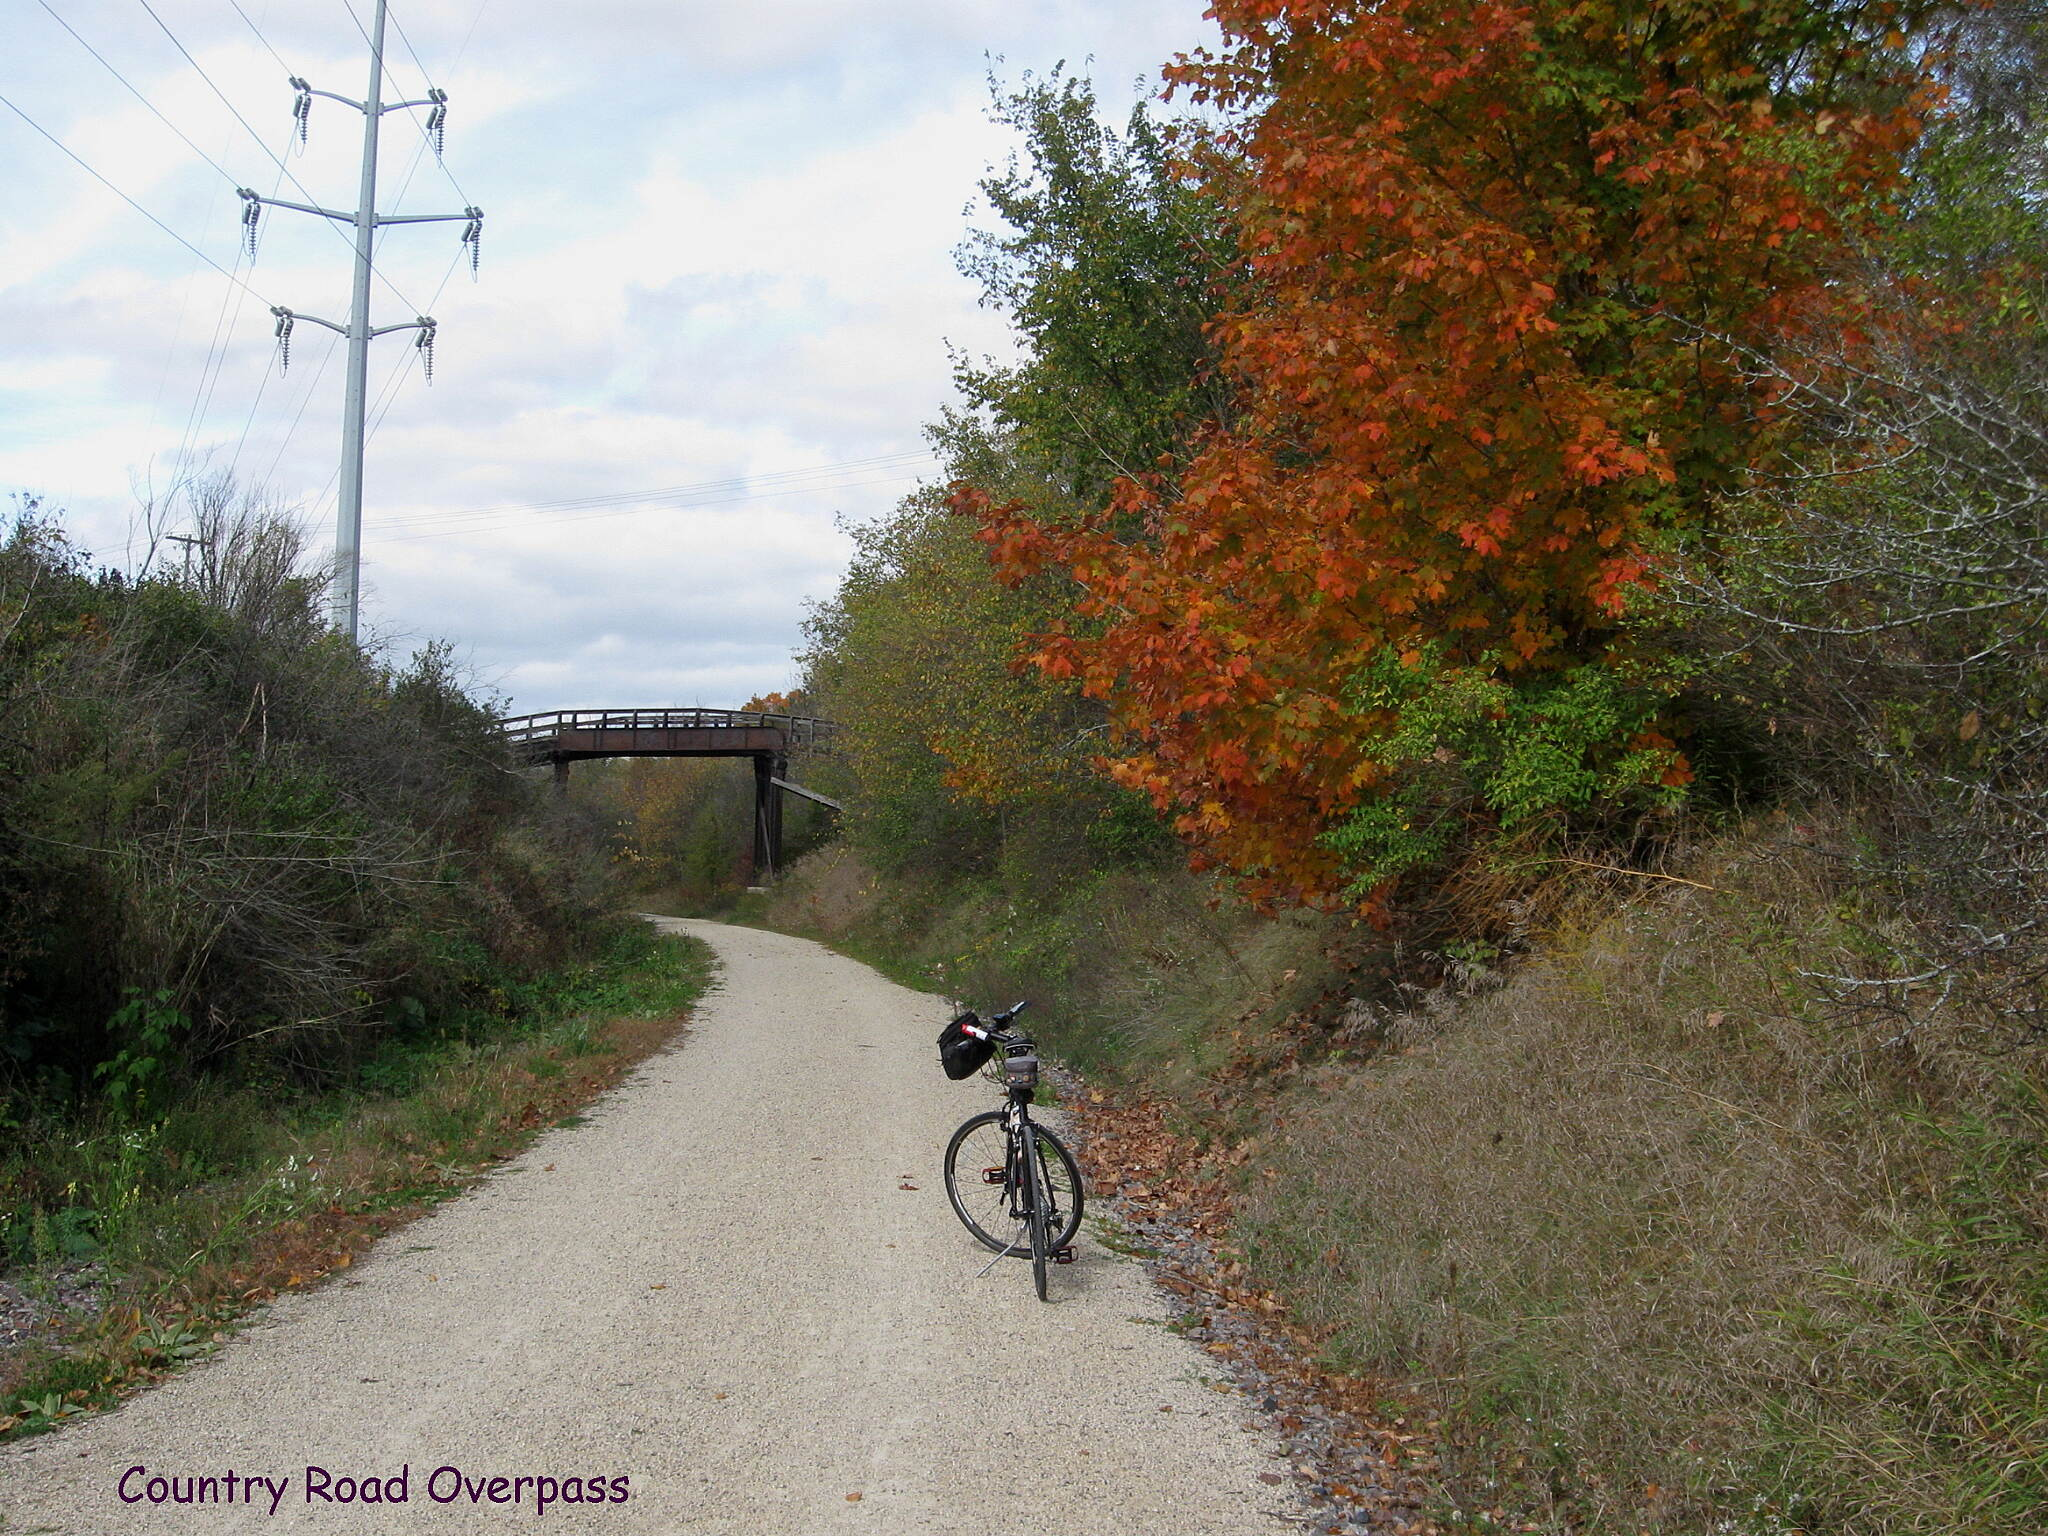 Eisenbahn State Trail Country Road Overpass